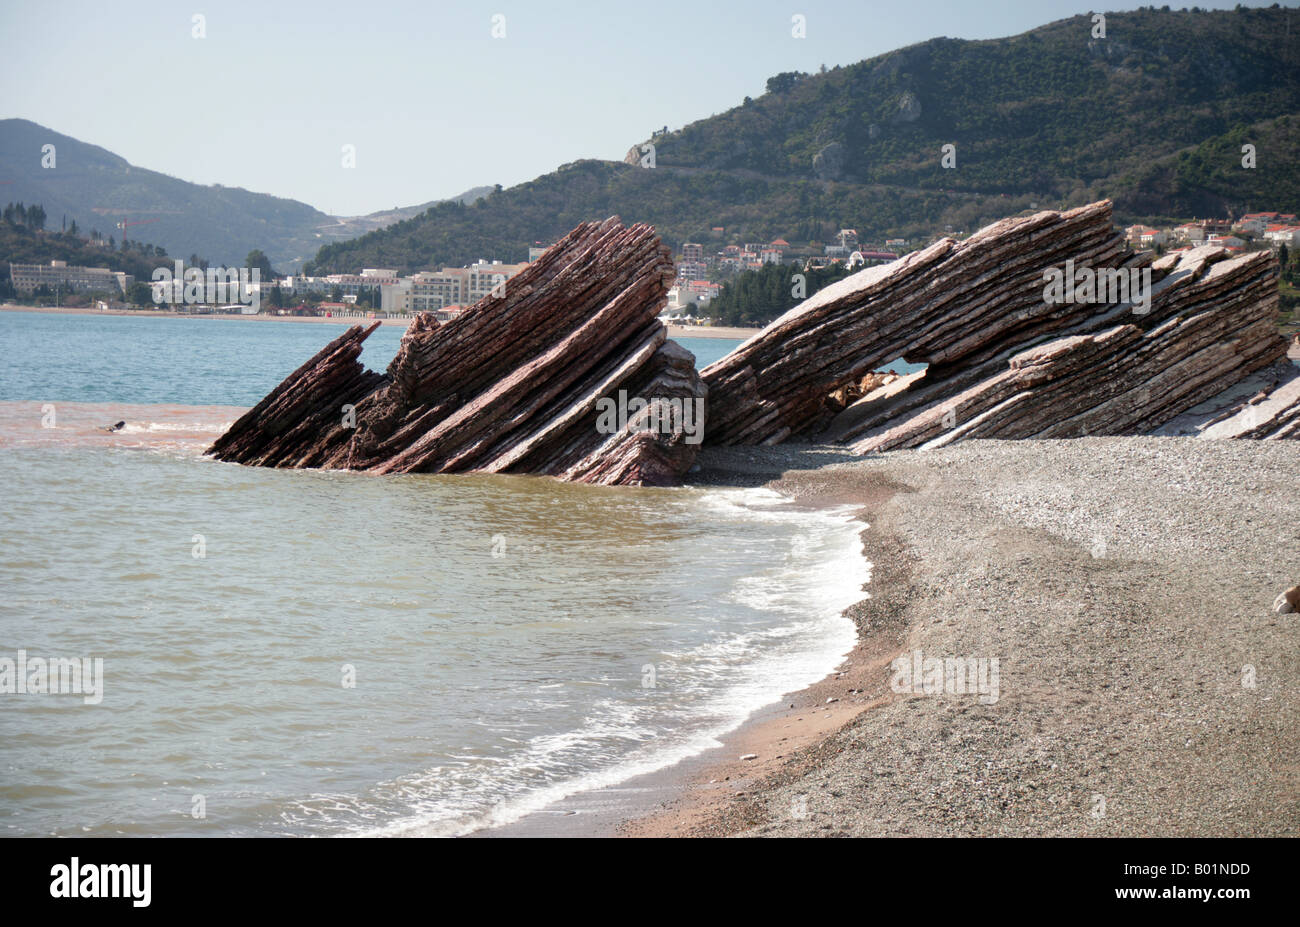 curious rock formations on the beach Budva Riviera Montenegro - Stock Image